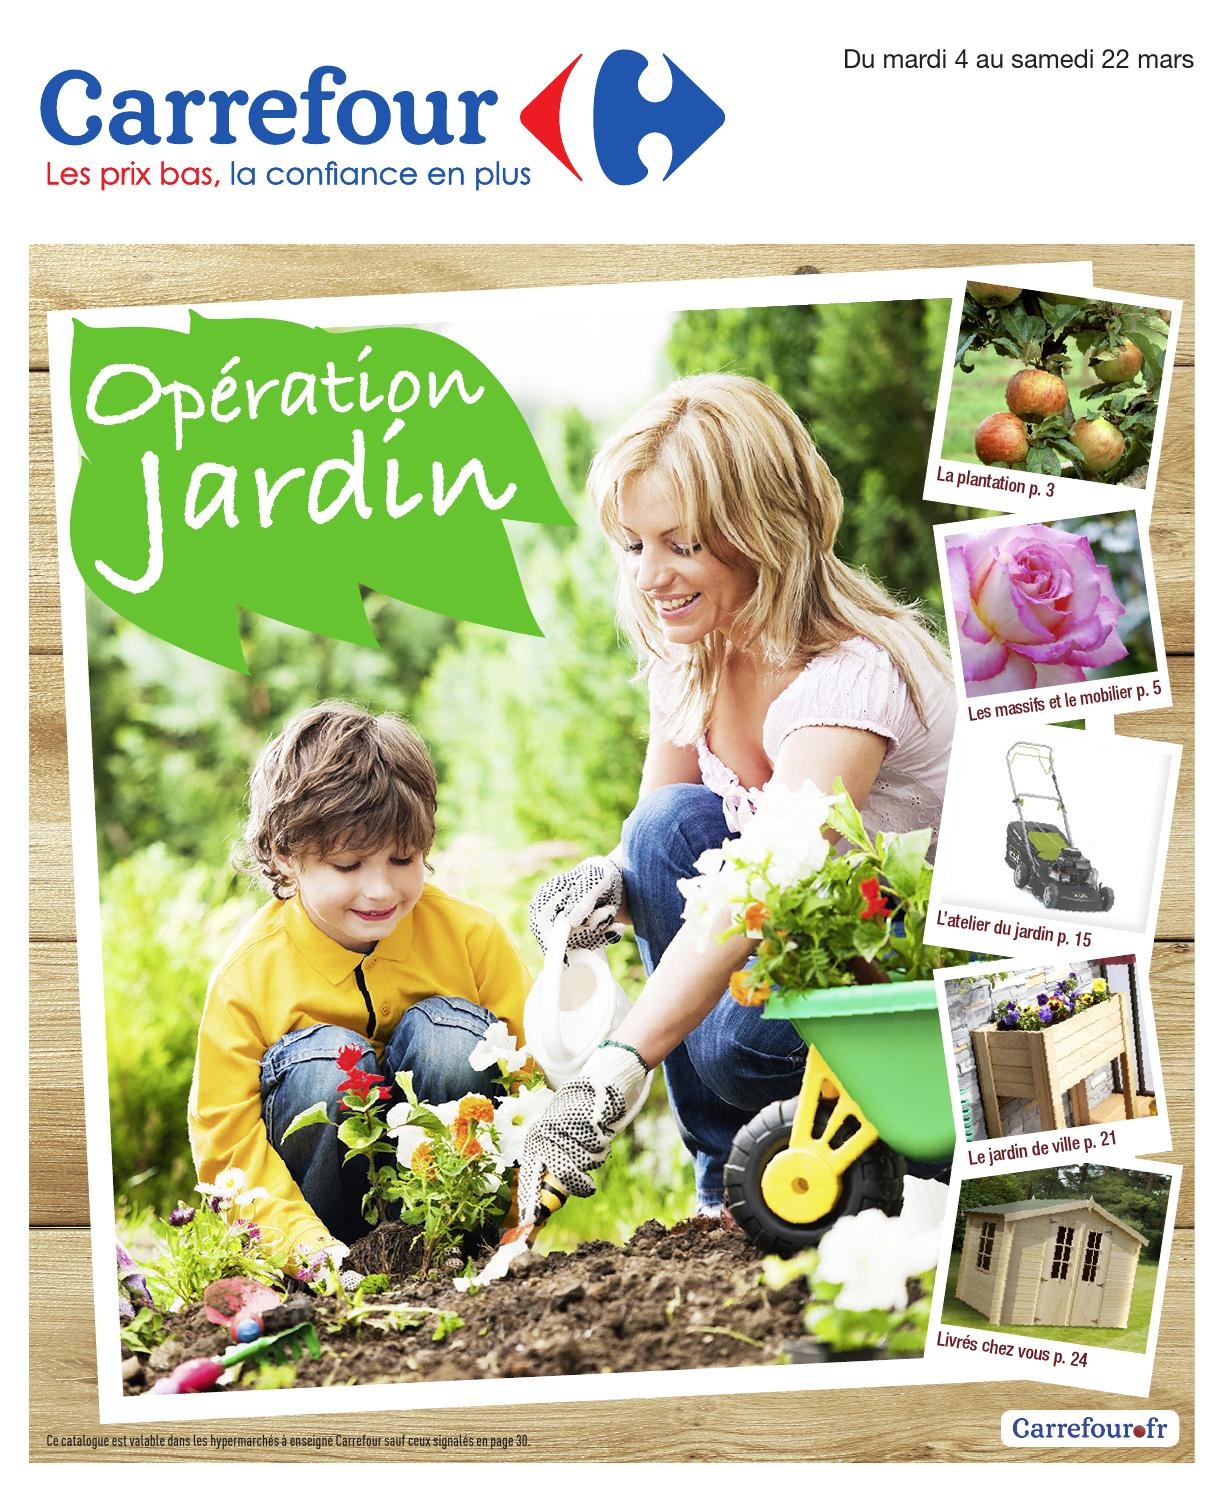 Catalogue Carrefour - 4-22.03.2014 By Joe Monroe - Issuu avec Abris De Jardin Carrefour